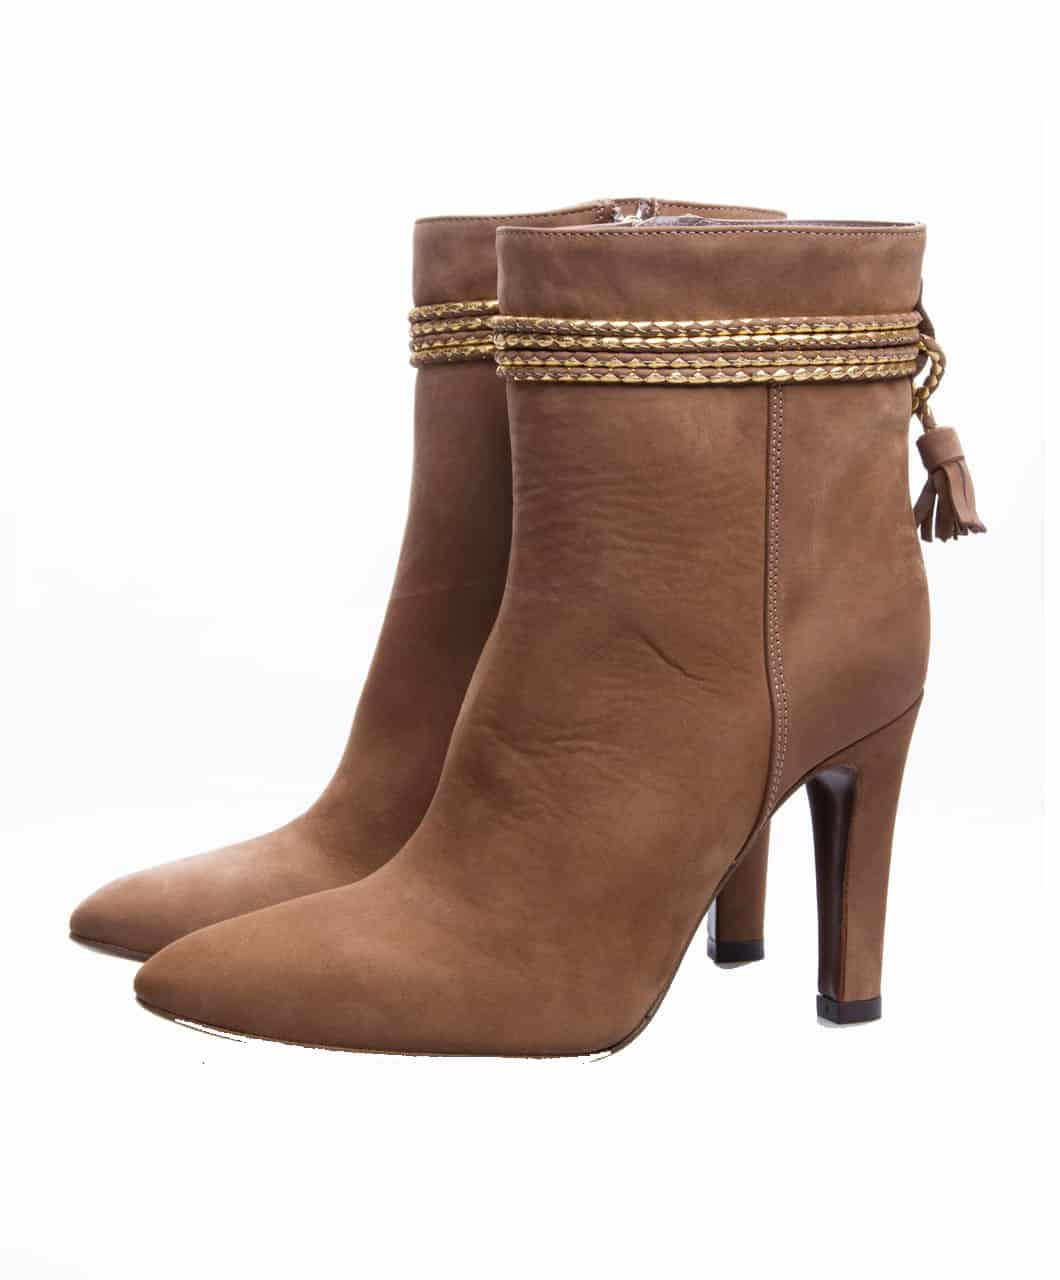 ankle boots tassle